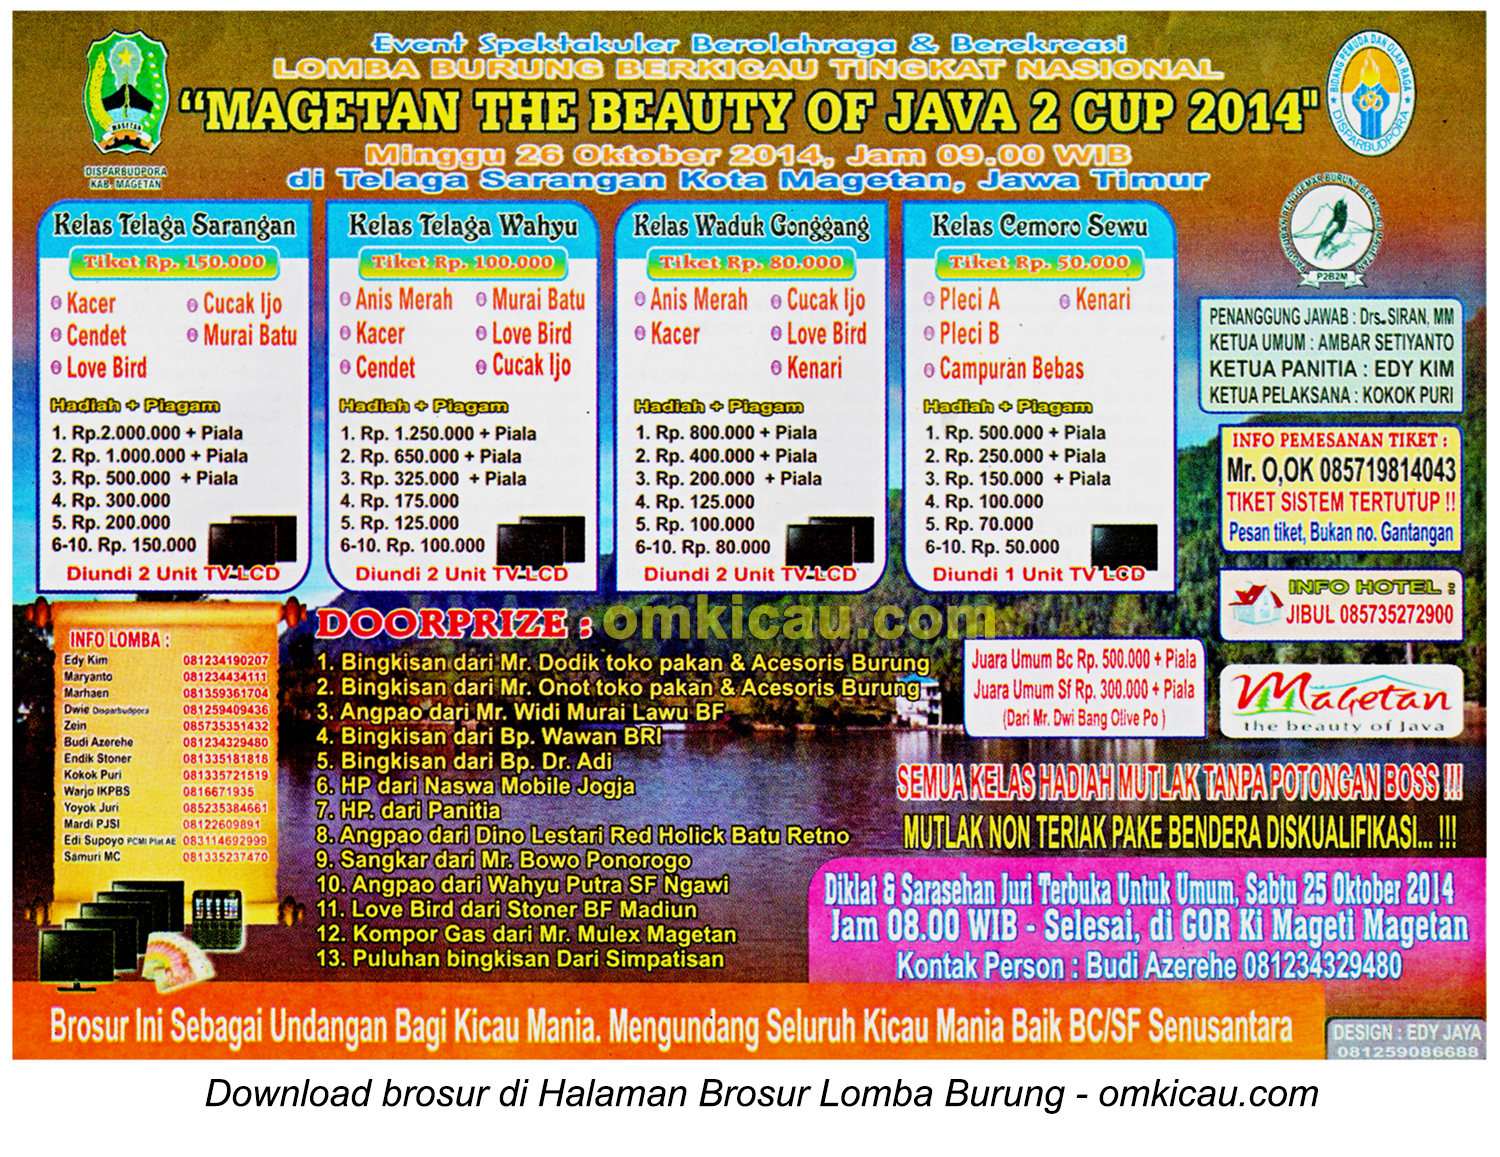 Brosur Lomba Burung Magetan The Beauty of Java Cup 2, Magetan, 26 Oktober 2014